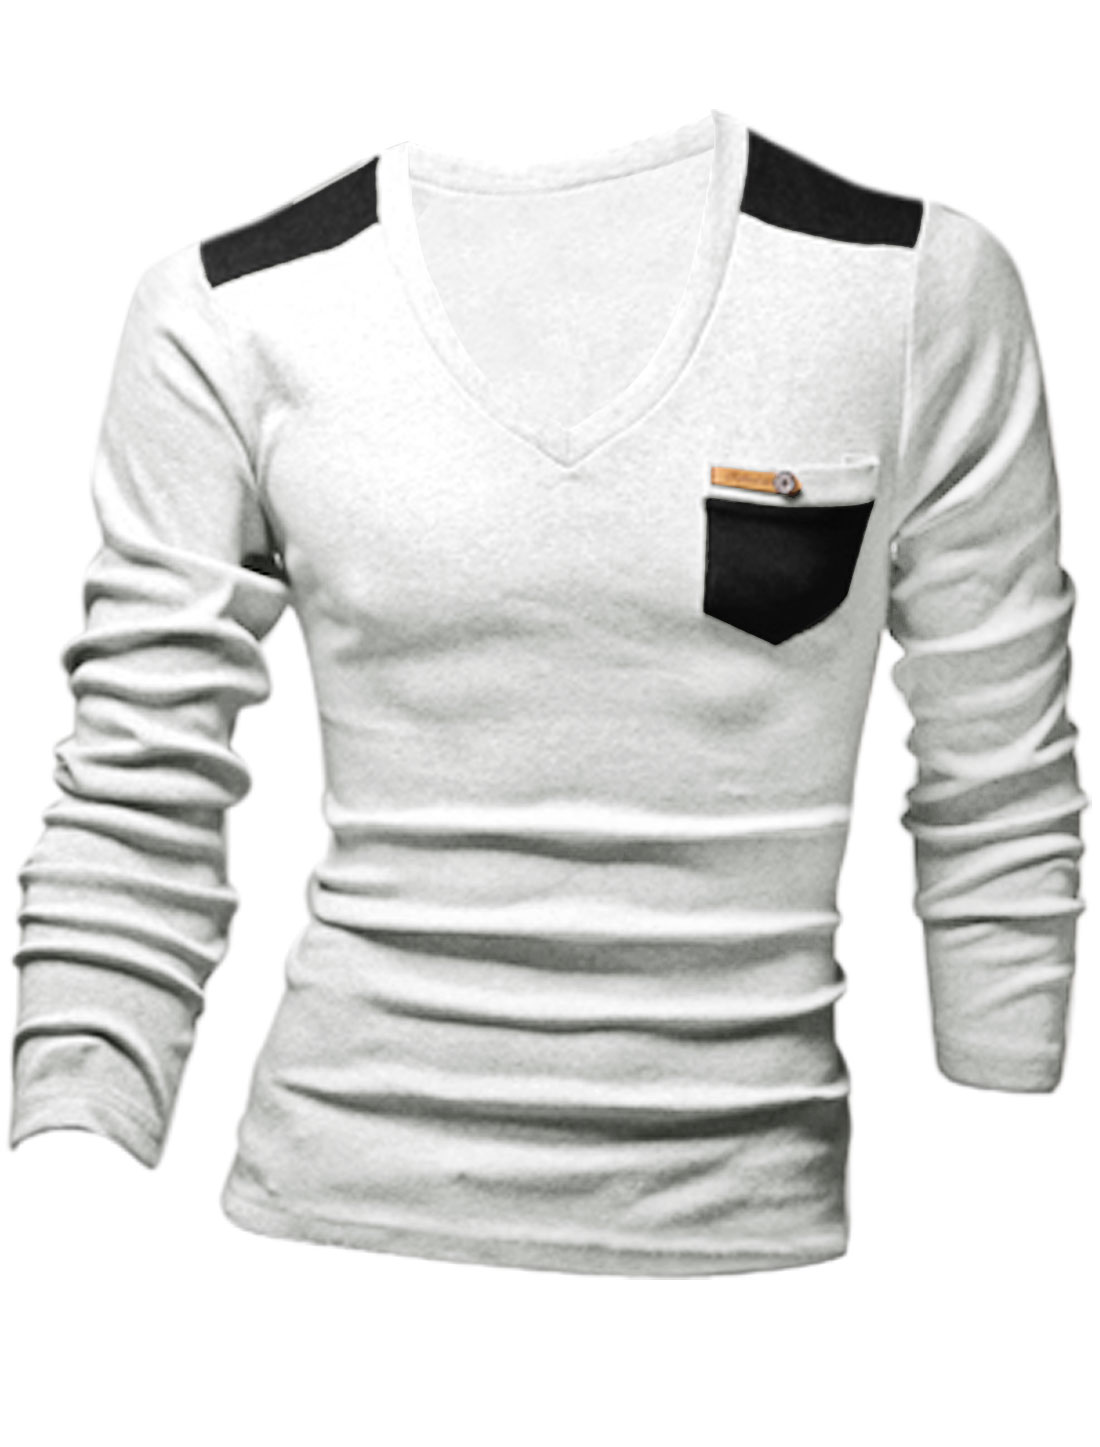 Men Cozy Fit Slipover Imitation Leather Decor Top Light Gray M